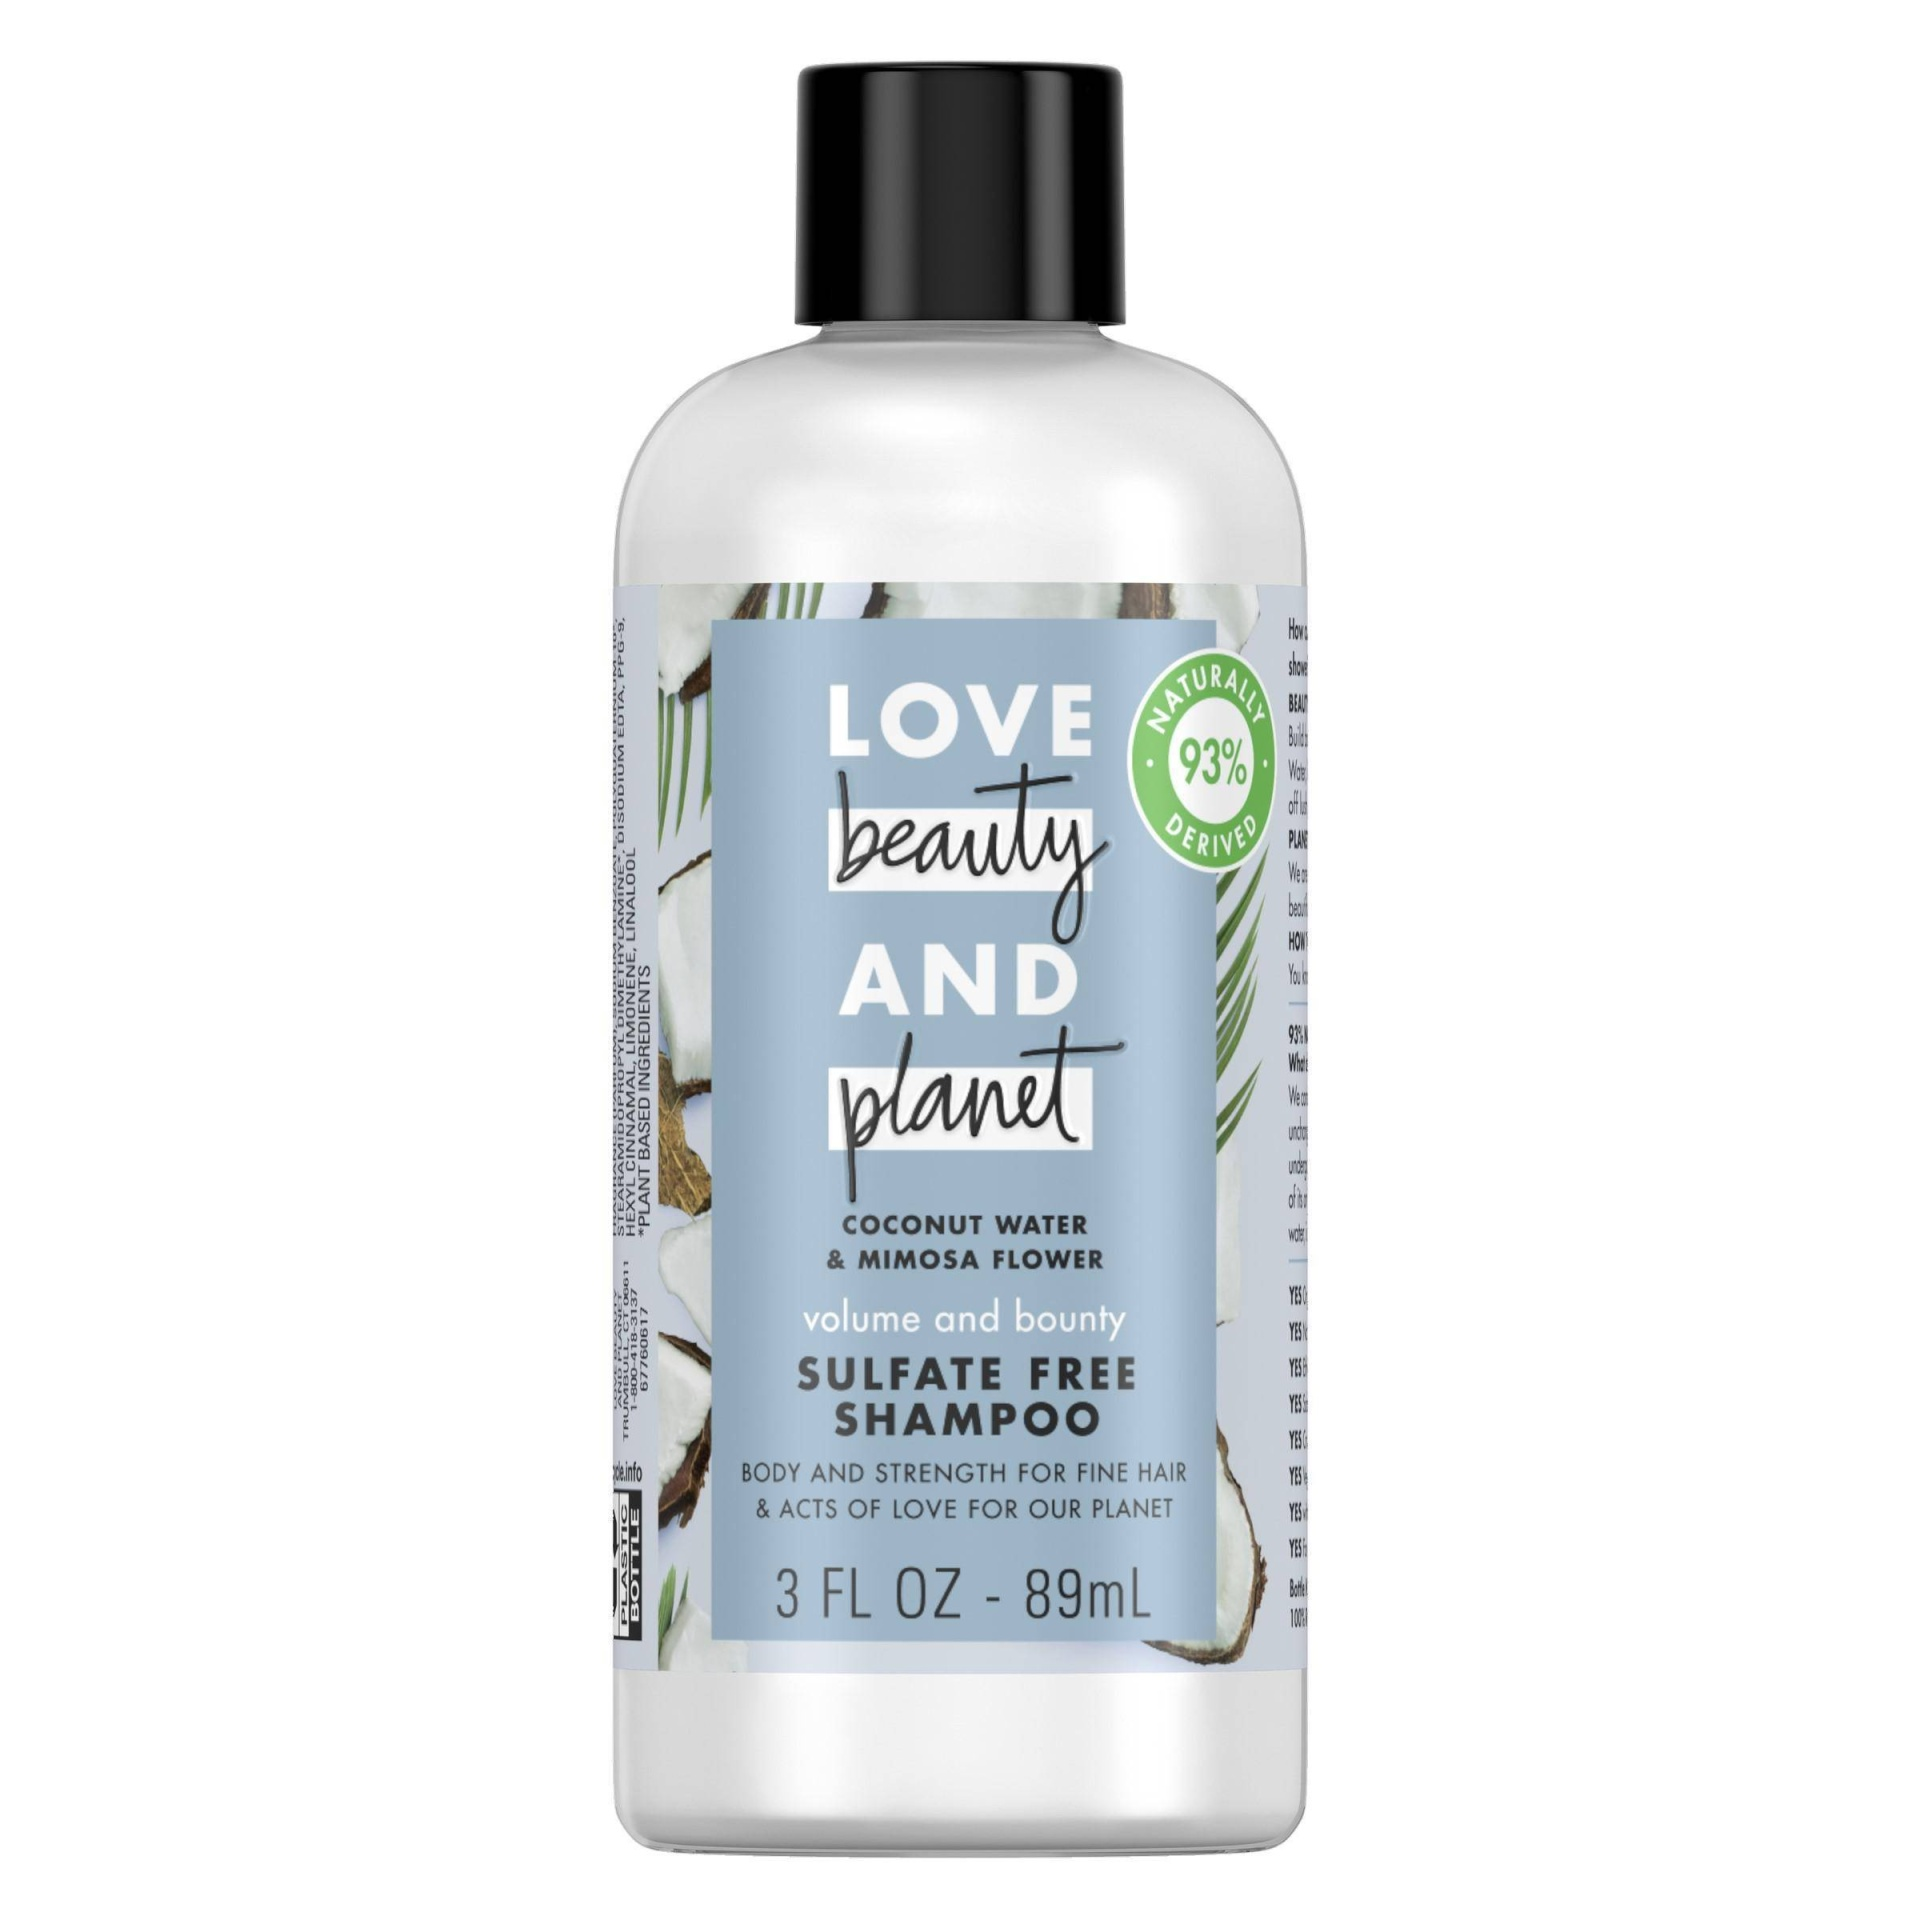 slide 1 of 6, Love Beauty and Planet Love Beauty & Planet Coconut Water & Mimosa Flower Volume and Bounty Shampoo,